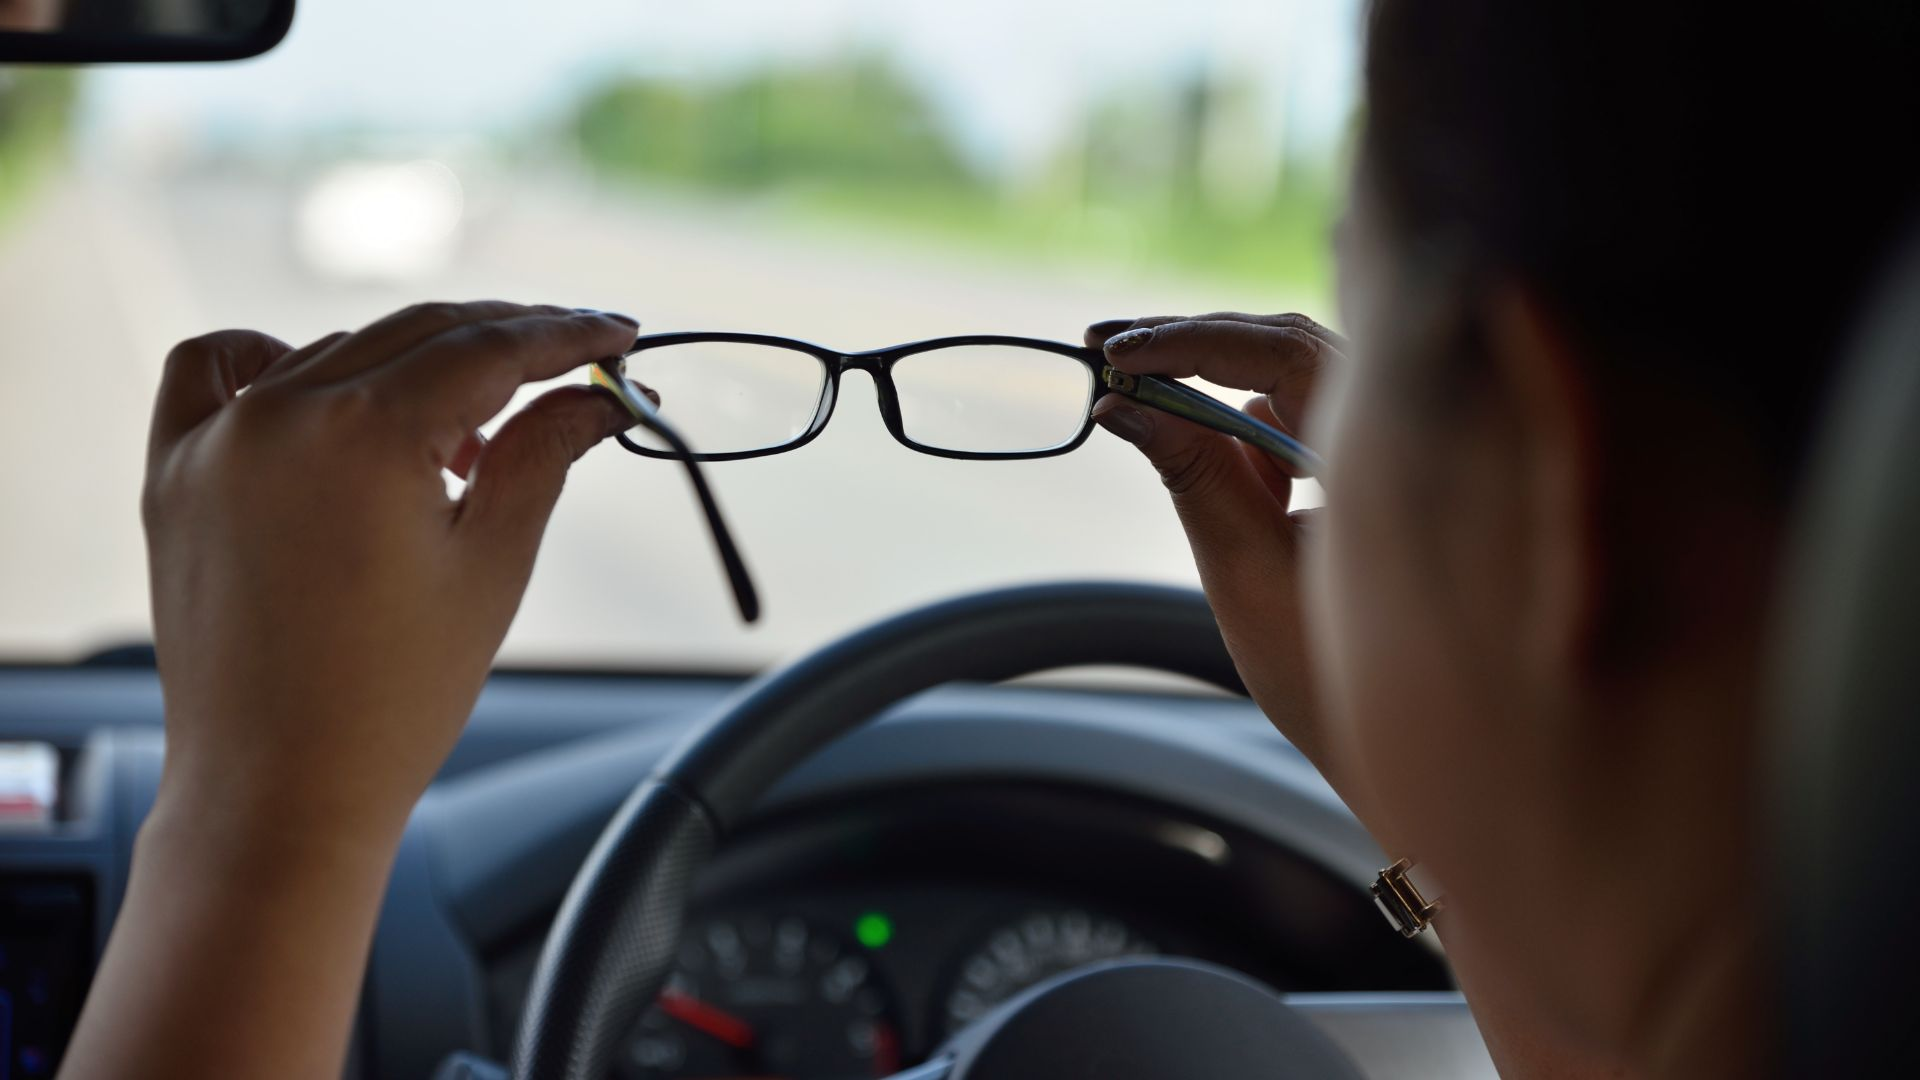 Driving eyesight